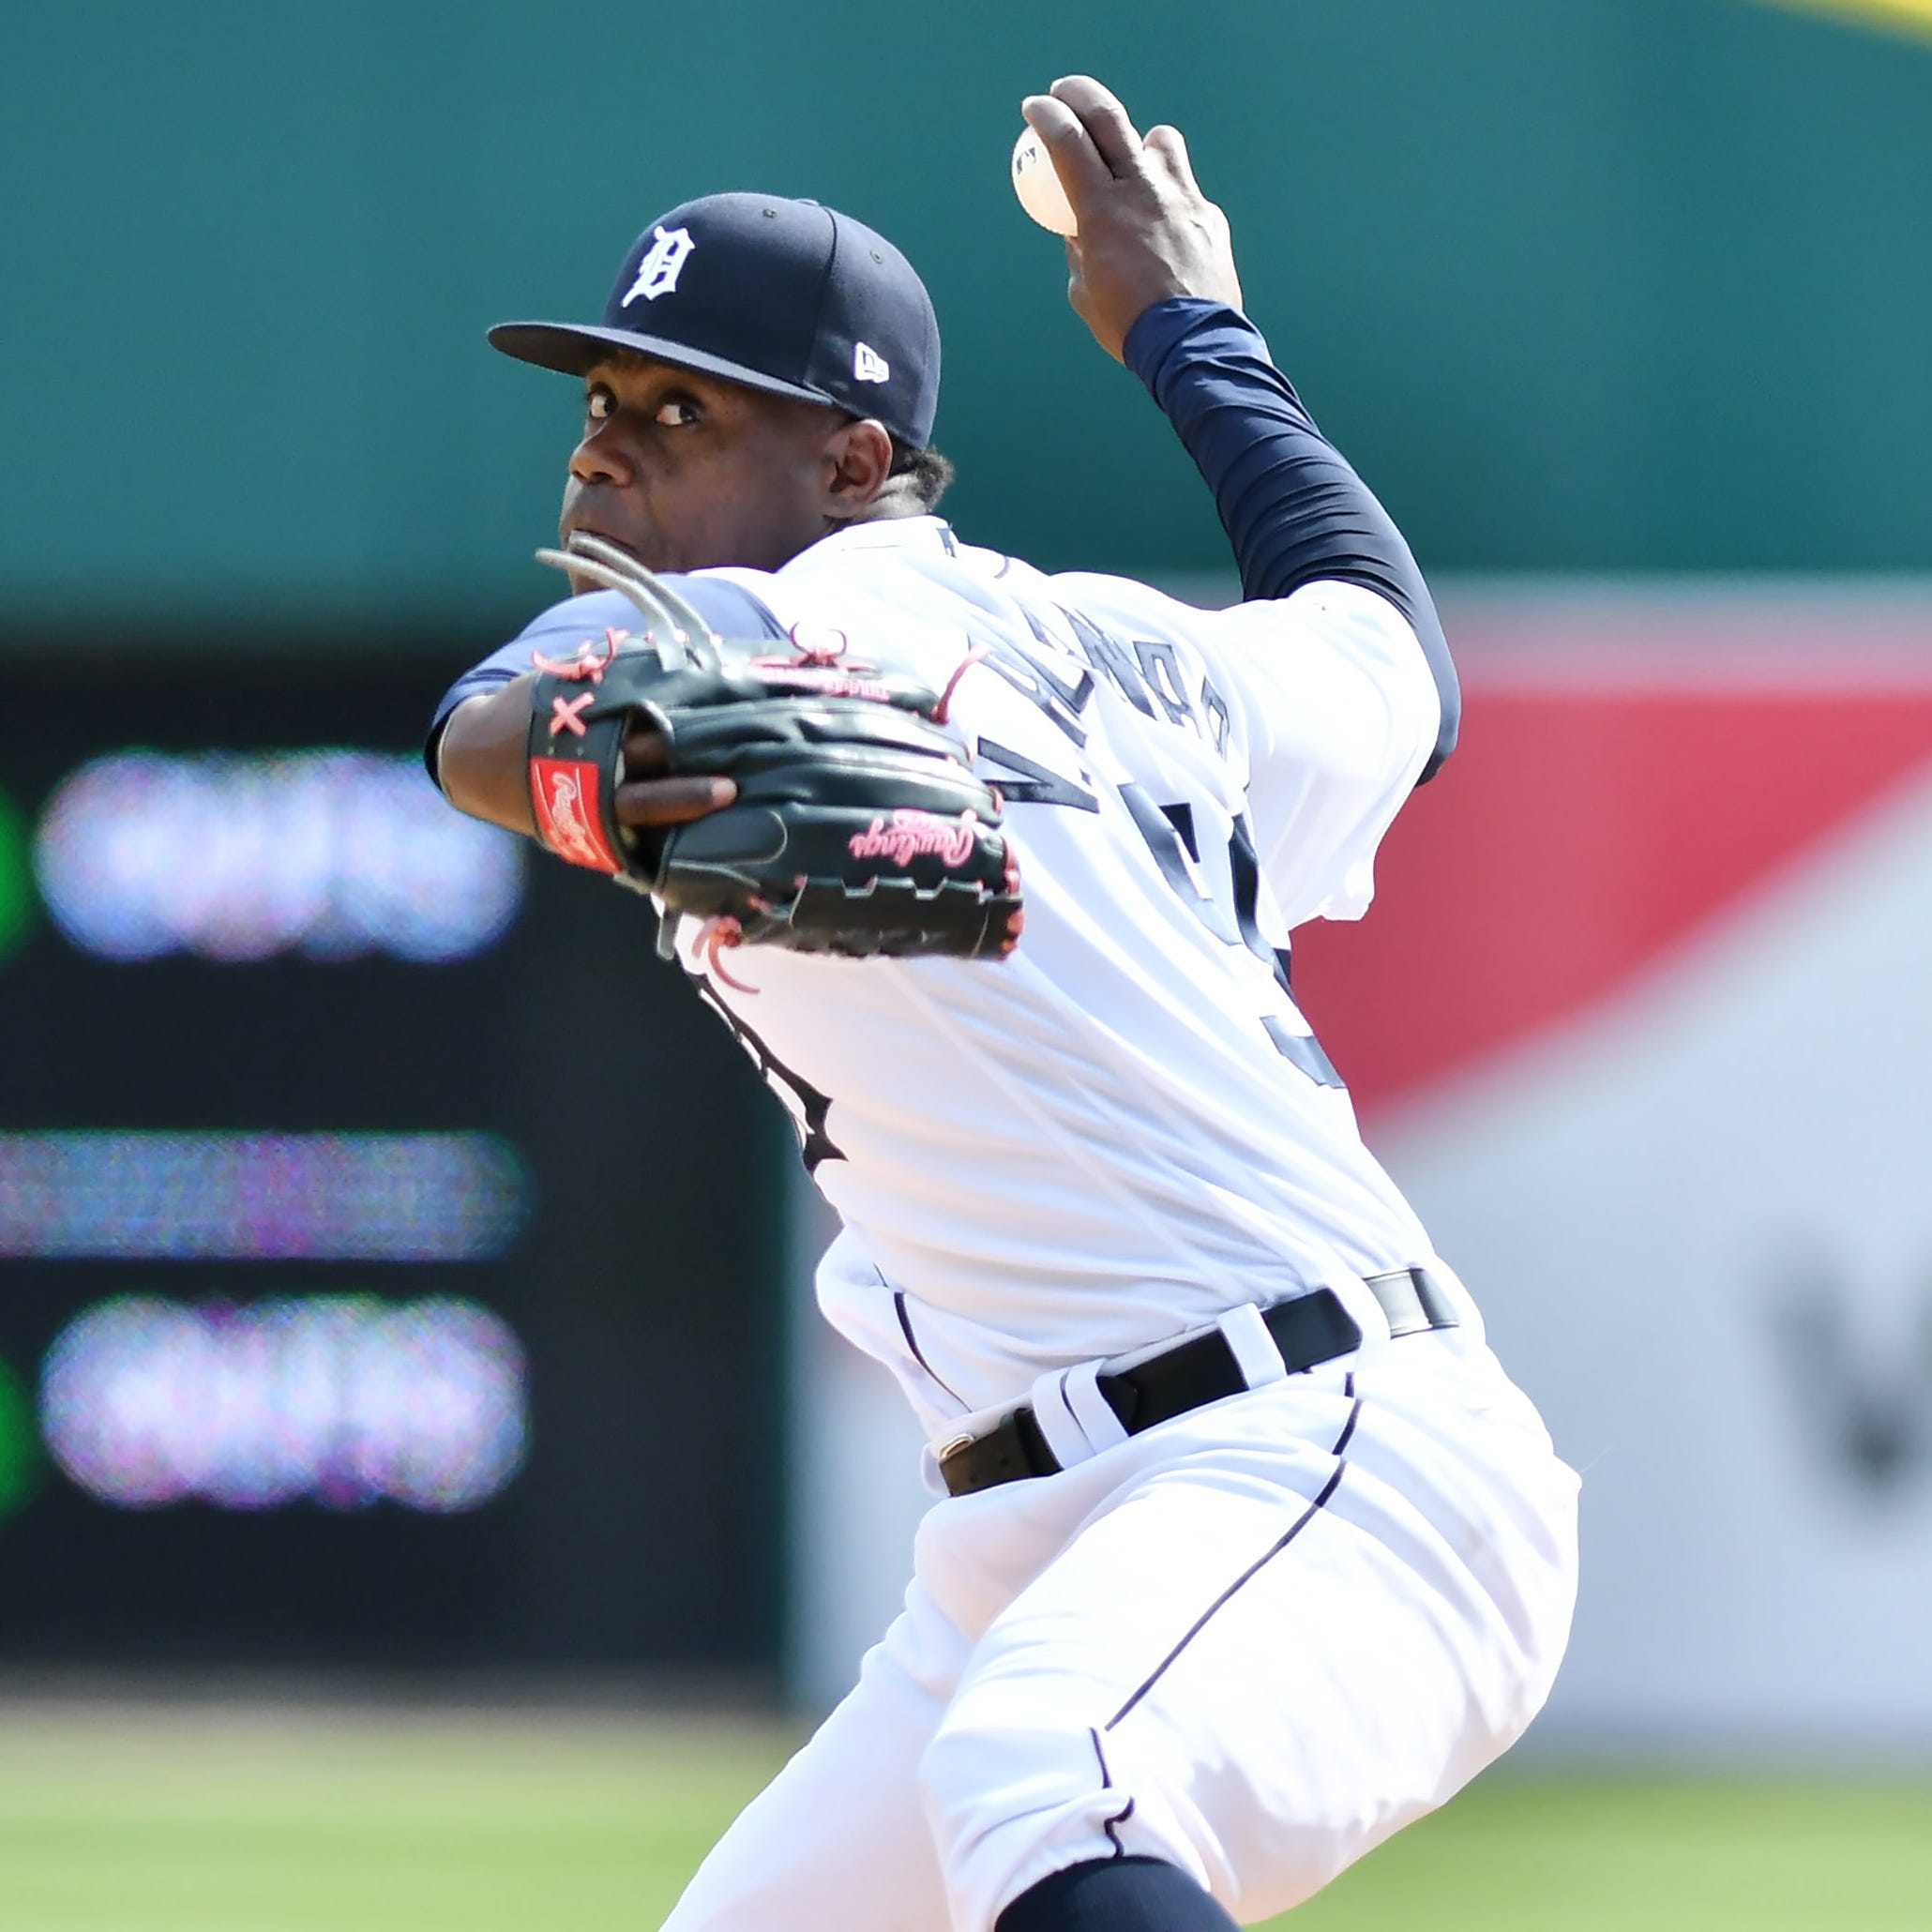 Streaks and slumps: Tigers' Cabrera, Castellanos hot; Alcantara, Goodrum not